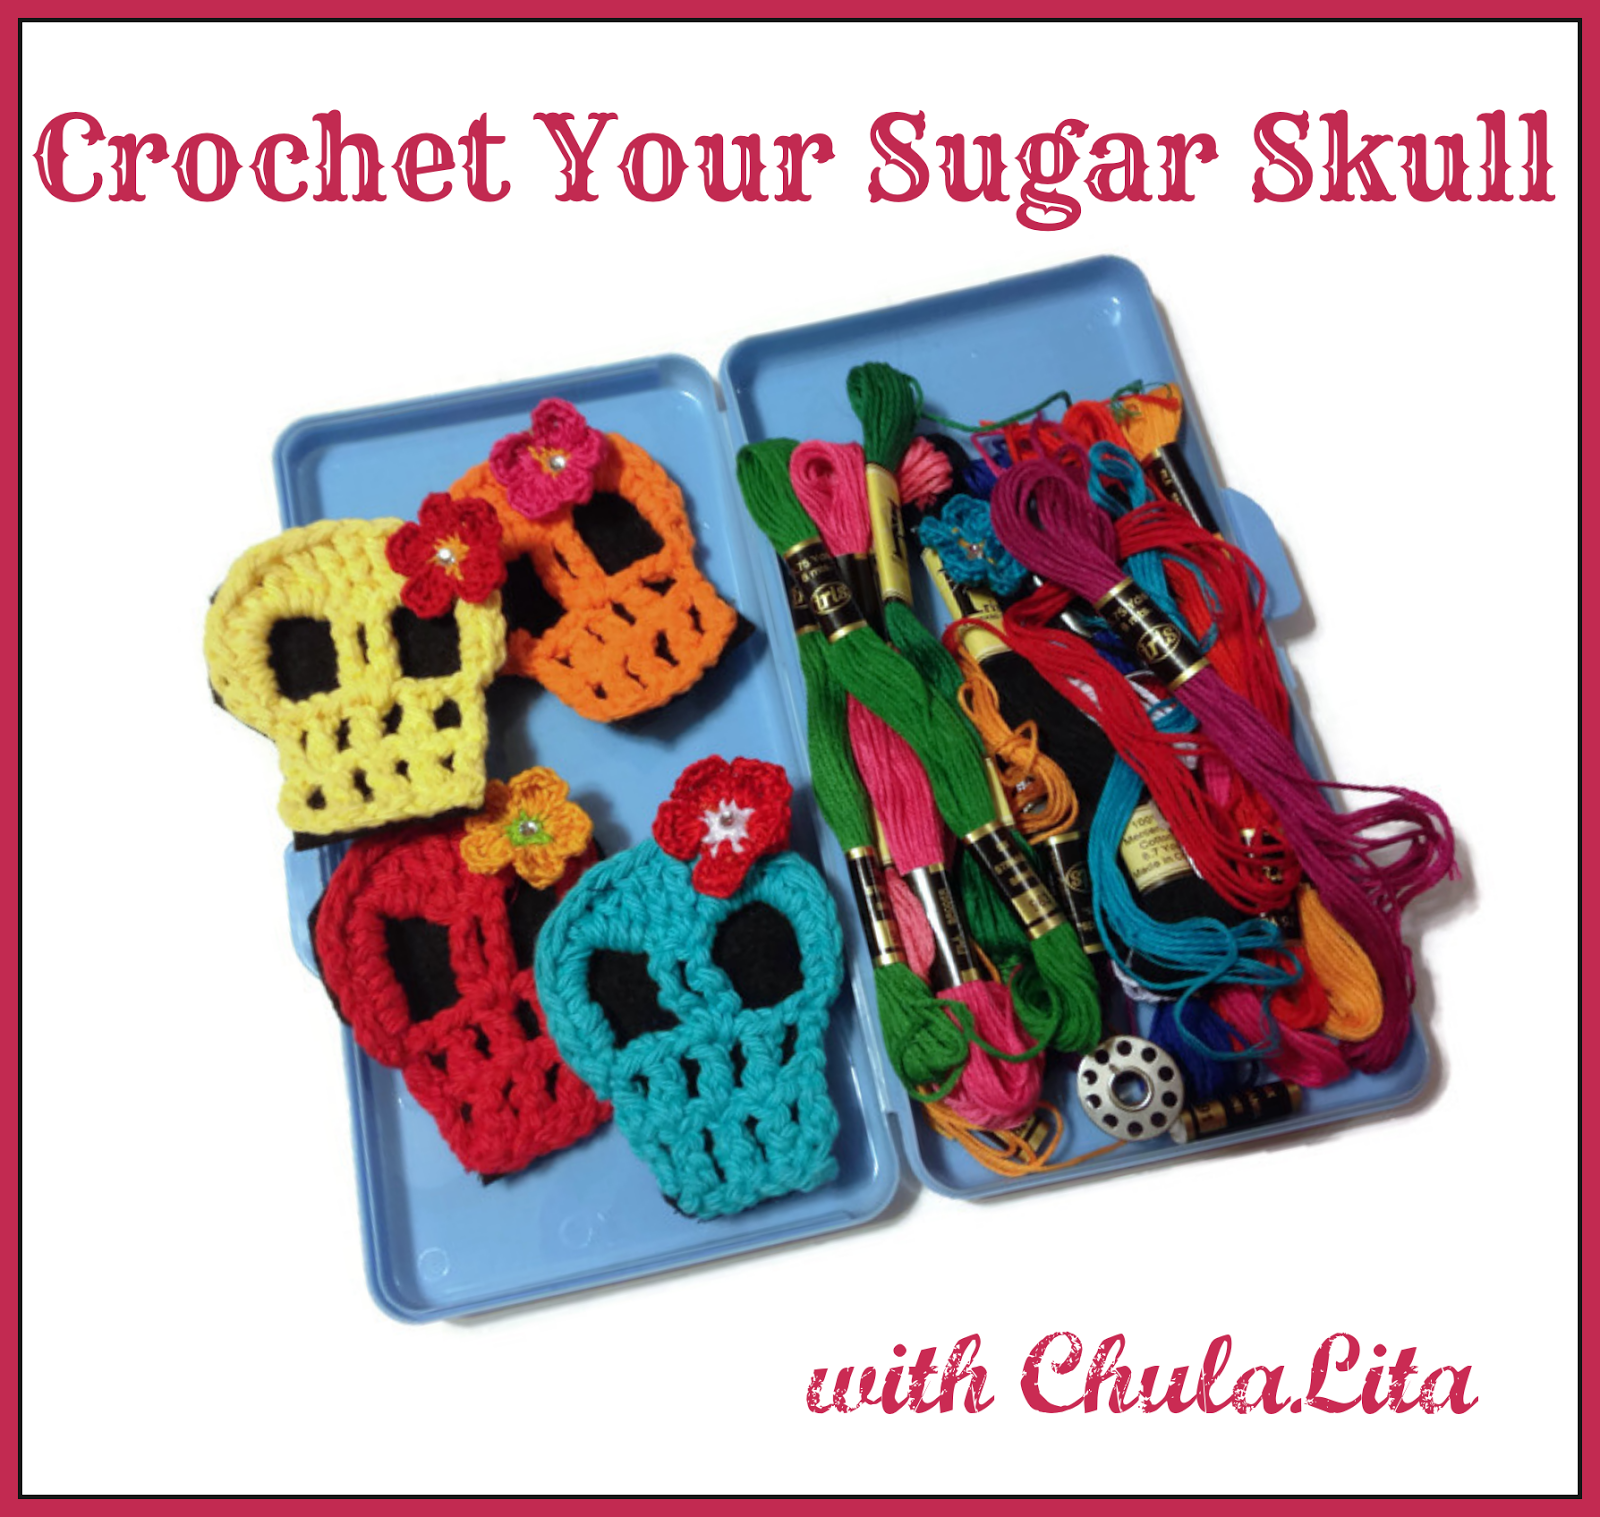 Make Your Wink Workshop Series Wink Artisans Crochet Sugar Skull with ChulaLita